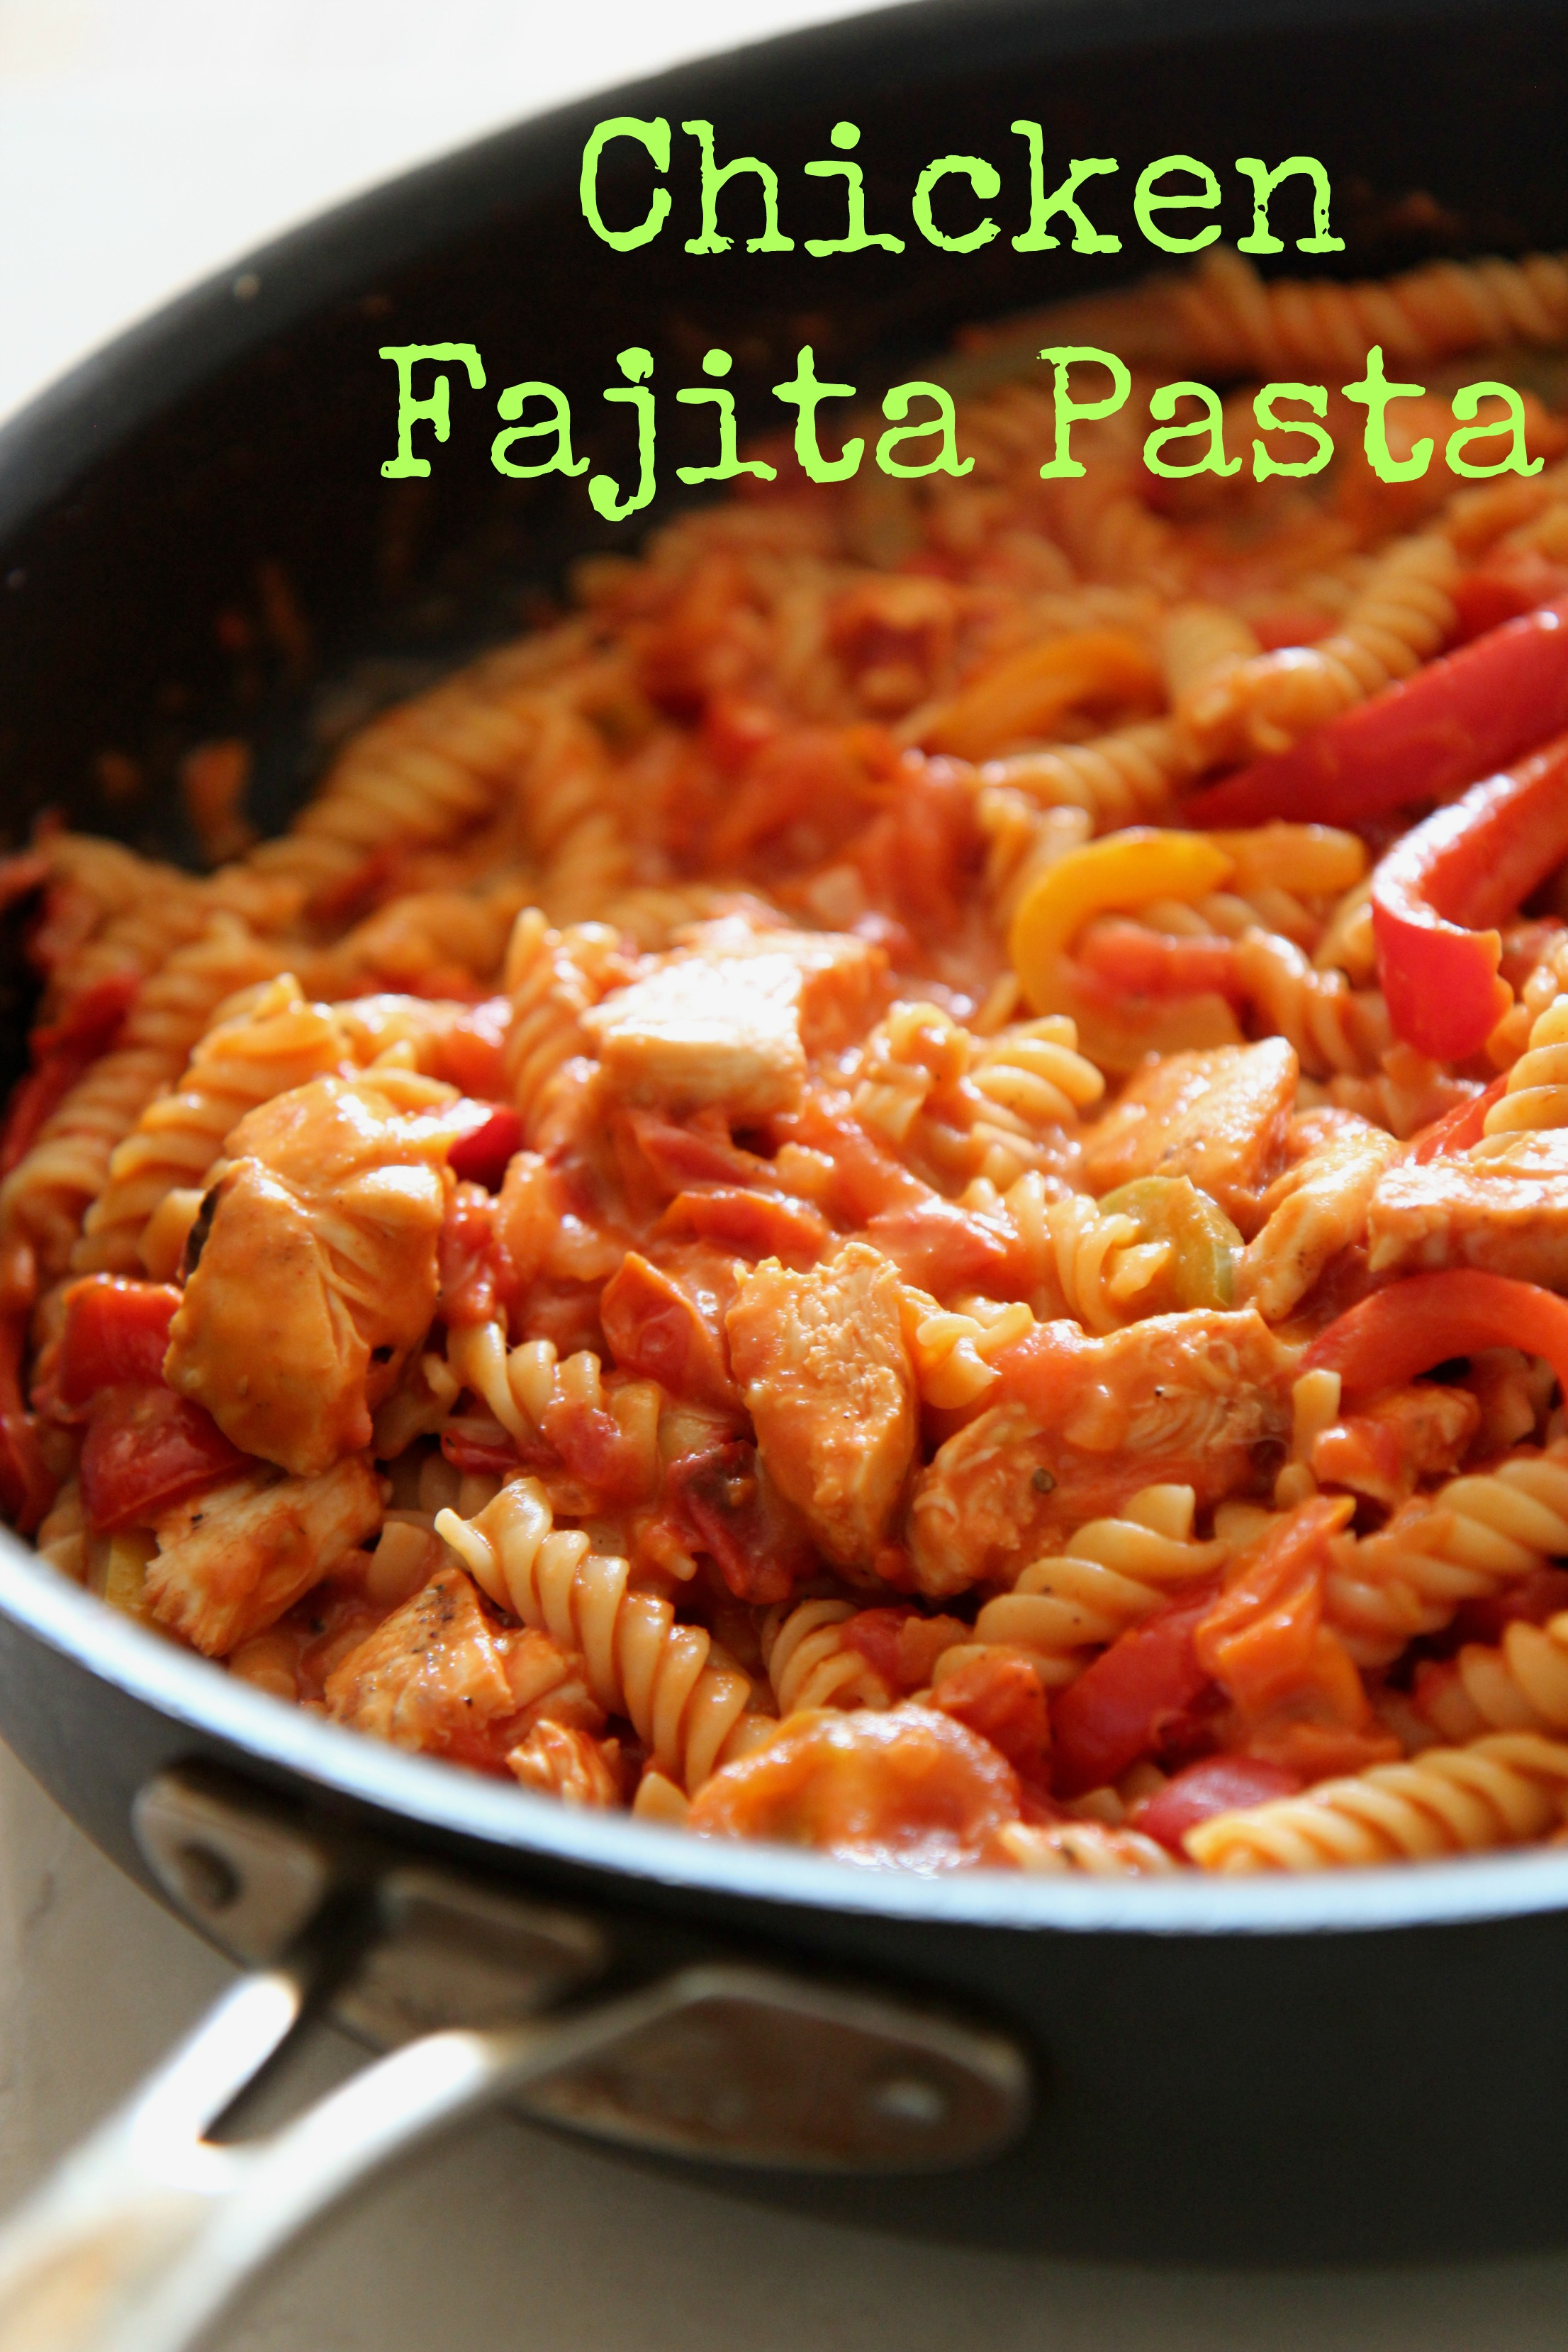 Toss together this easy chicken fajita pasta dish for a fast one-pot meal that everyone will love!